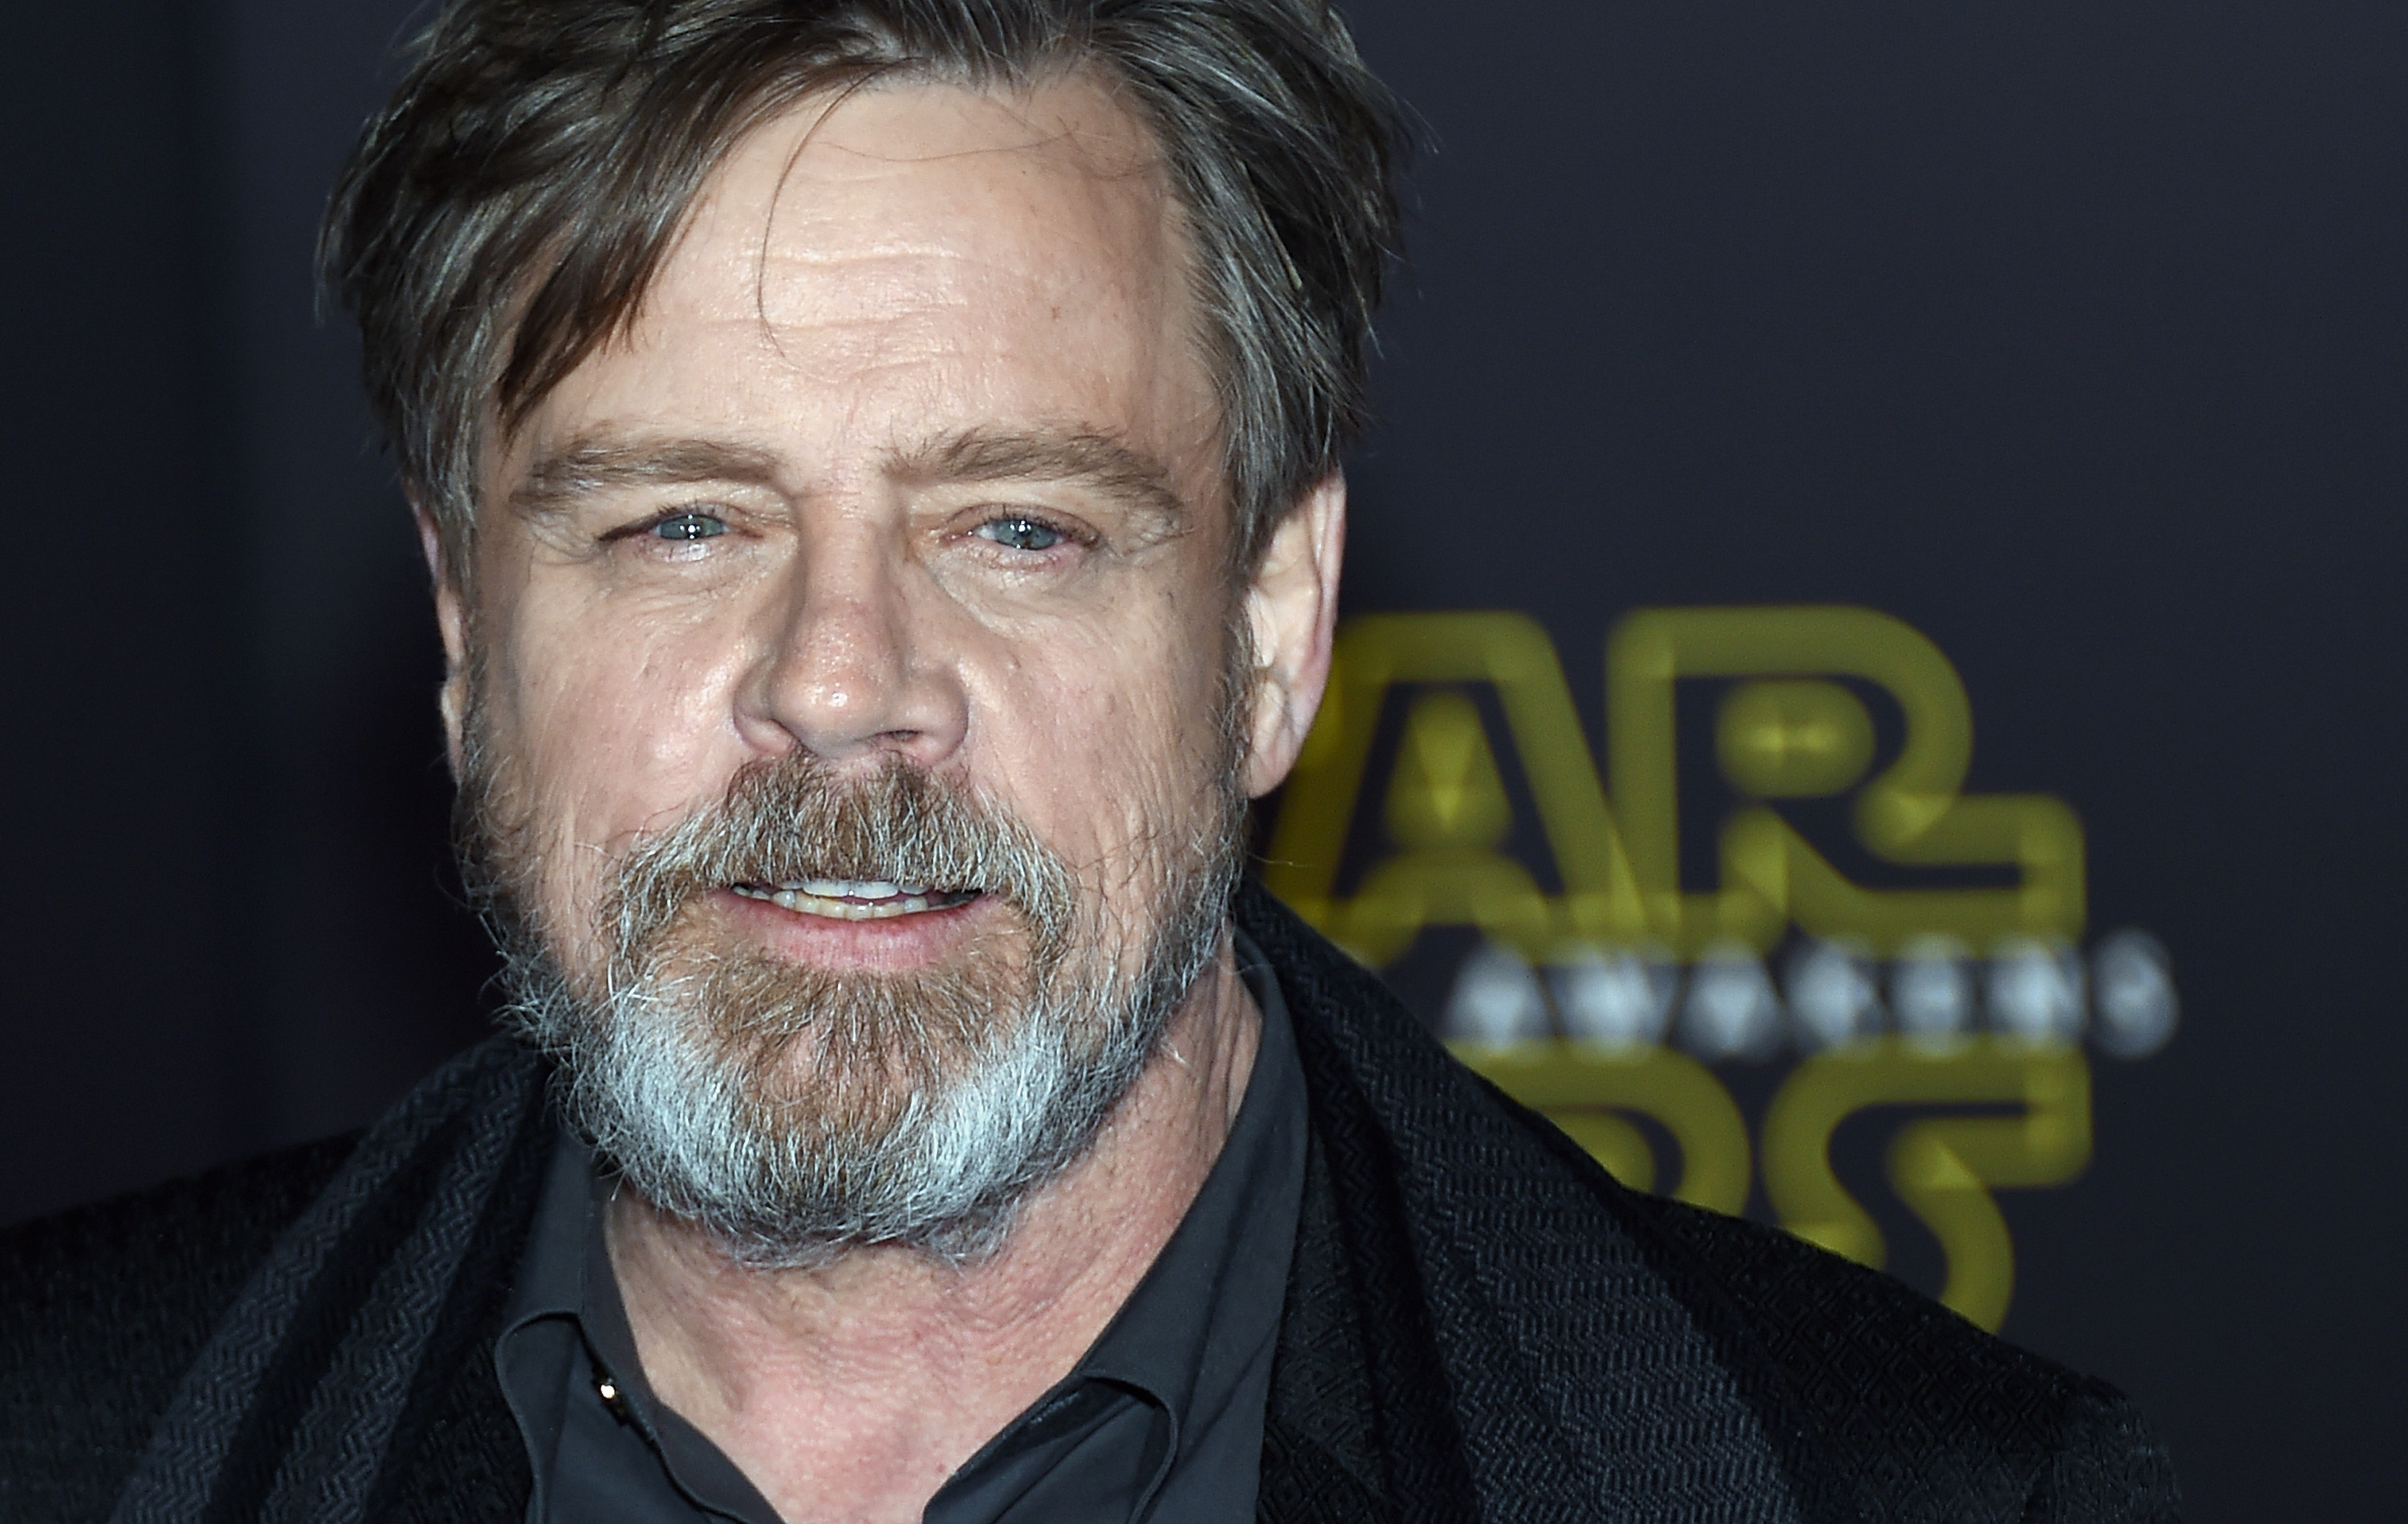 """HOLLYWOOD, CA - DECEMBER 14: Actor Mark Hamill attends the premiere of Walt Disney Pictures and Lucasfilm's """"Star Wars: The Force Awakens"""" at the Dolby Theatre on December 14, 2015 in Hollywood, California. (Photo by Ethan Miller/Getty Images)"""